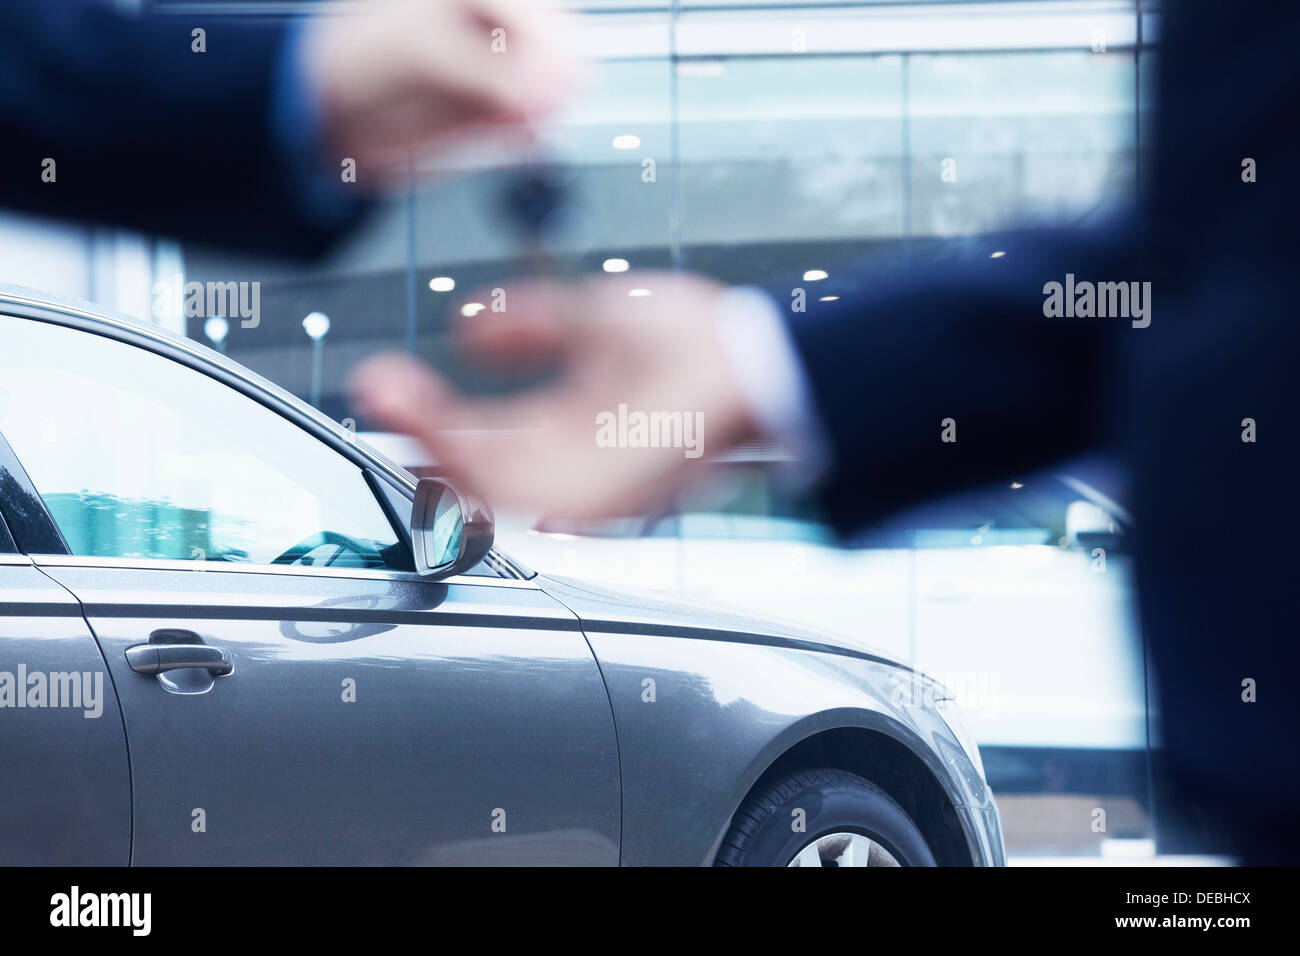 Car salesman handing over the keys for a new car to a young businessman, close-up - Stock Image